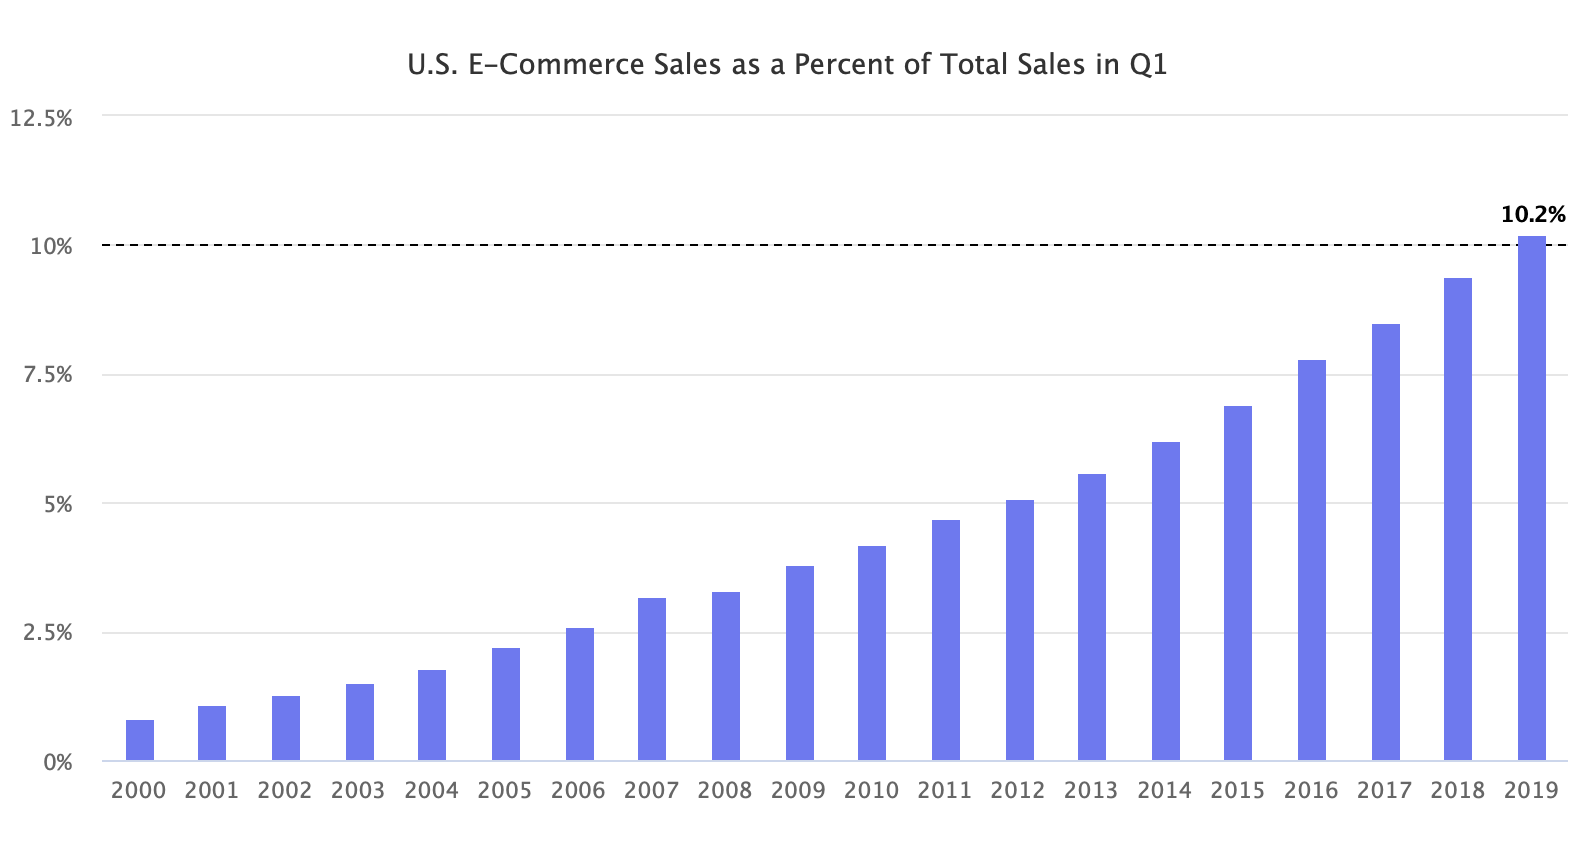 U.S. E-Commerce Sales as a Percent of Total Sales in Q1